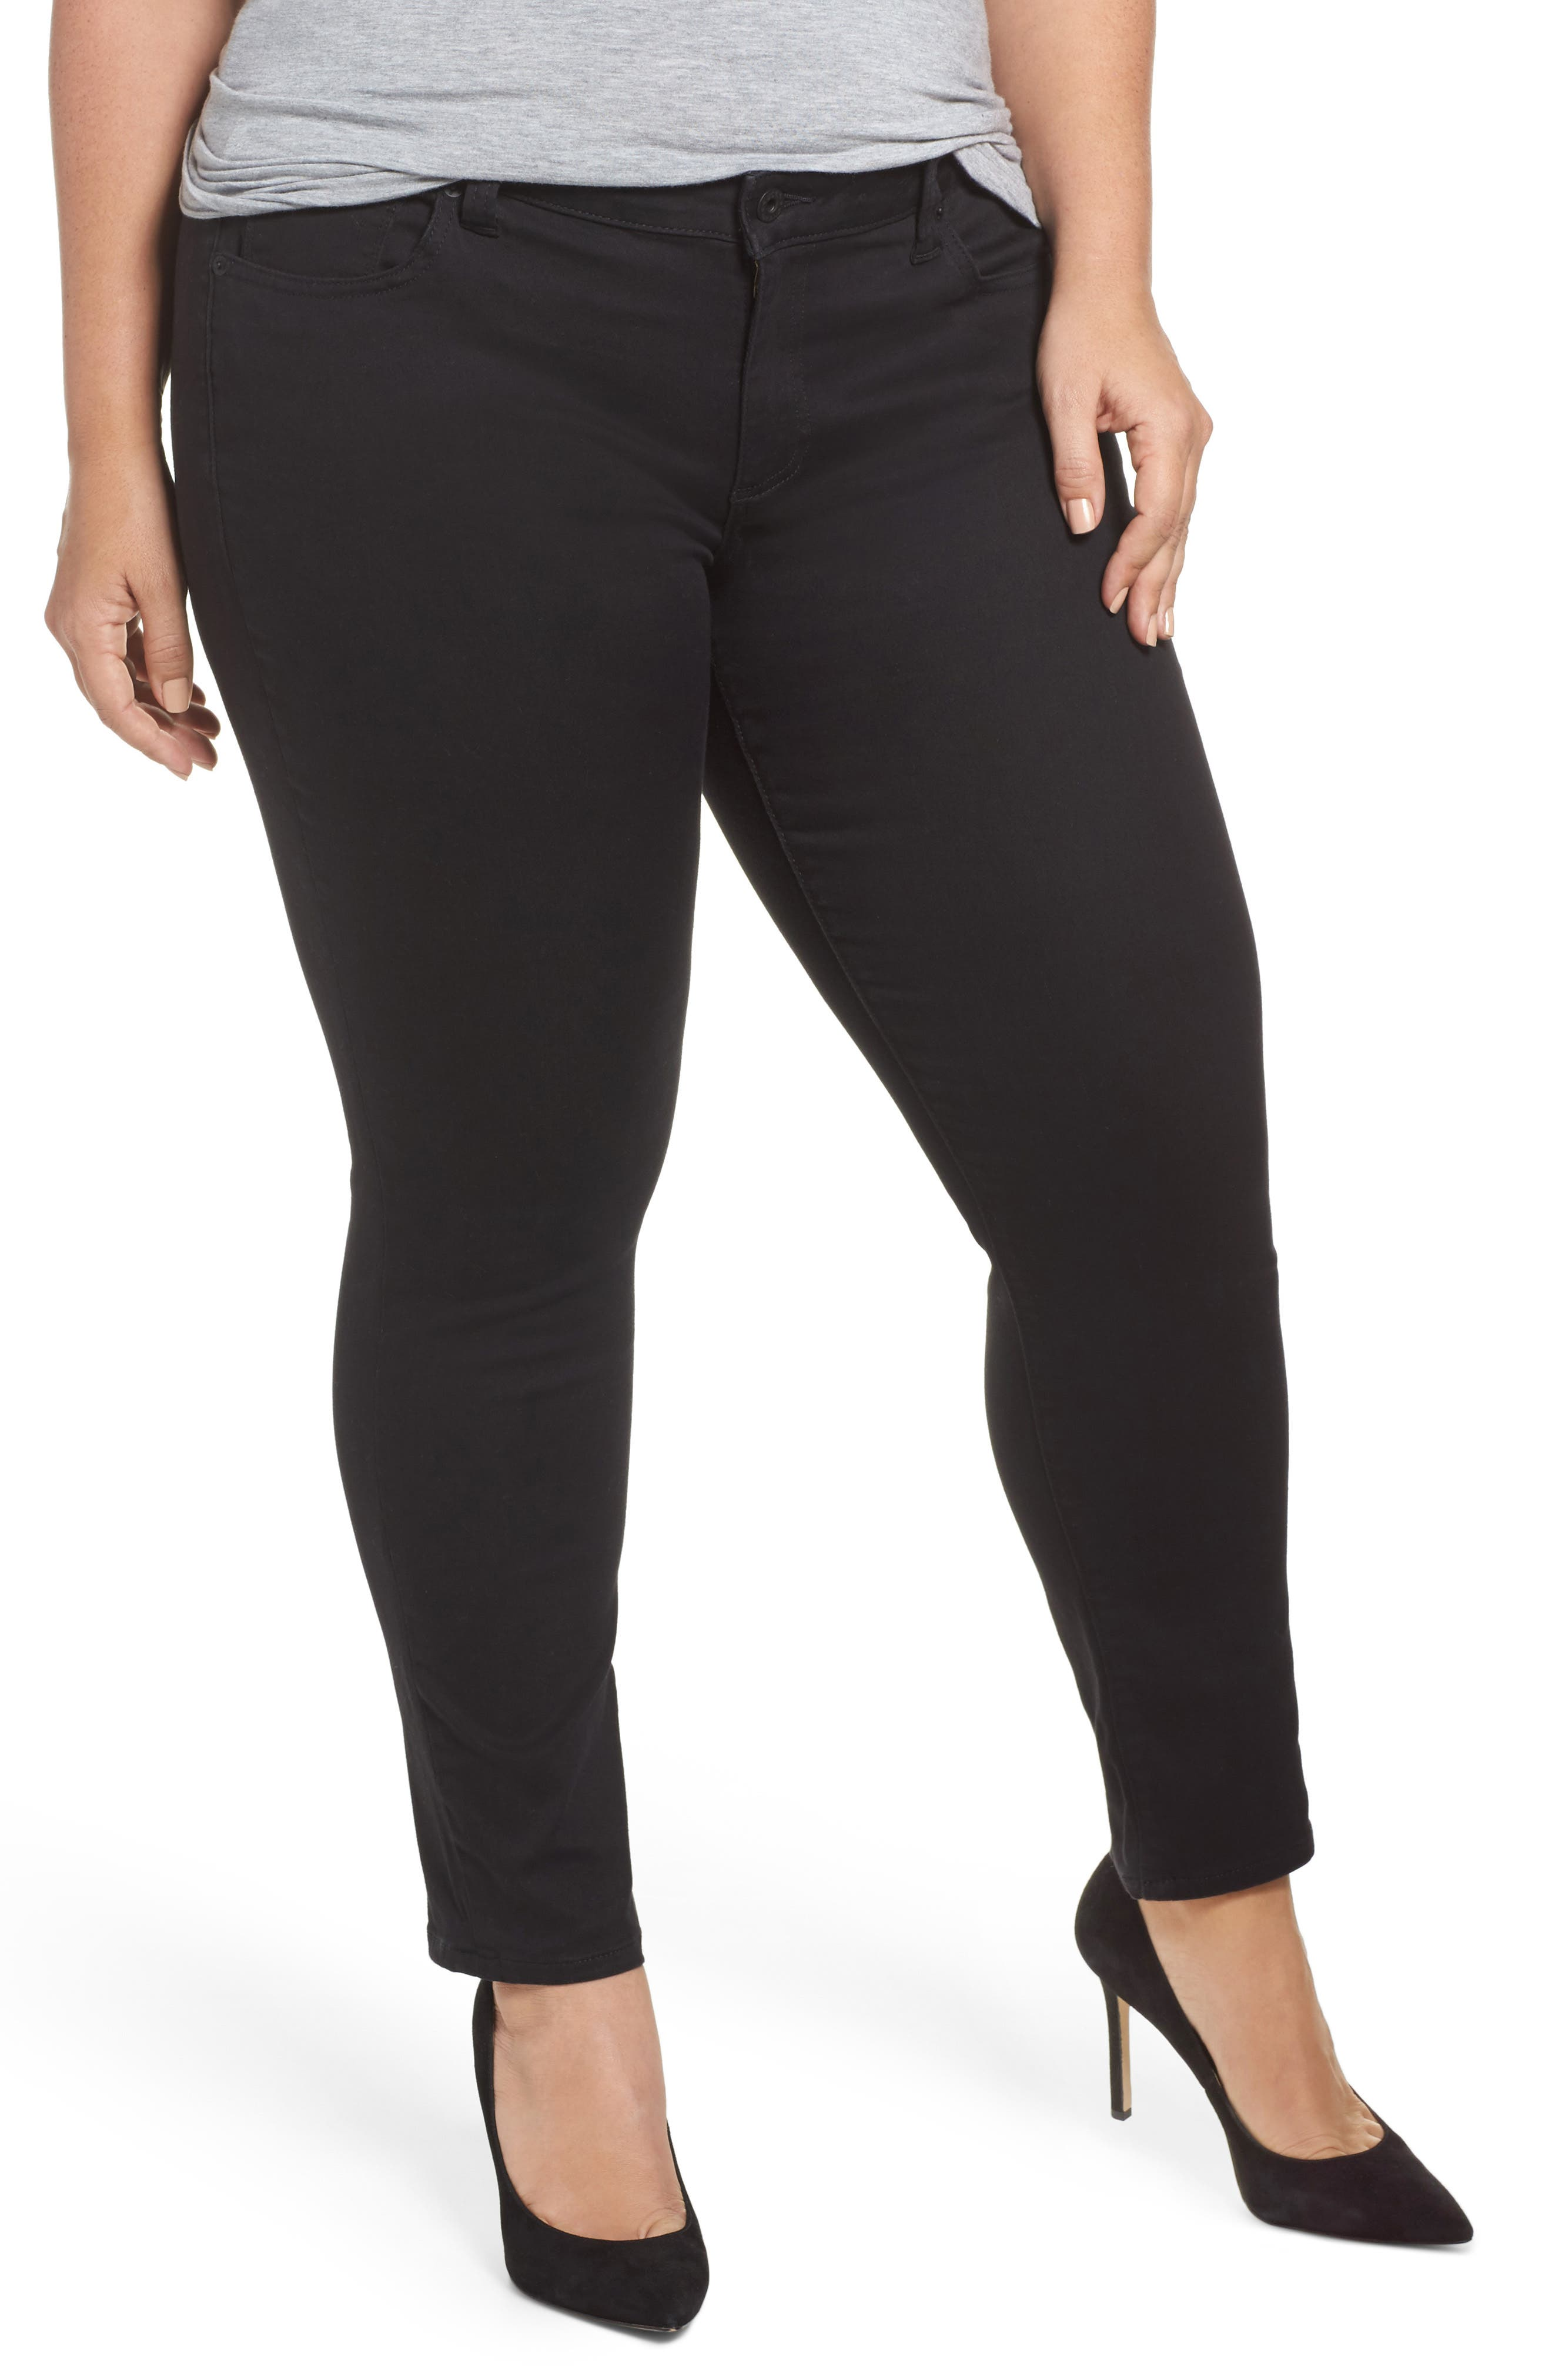 Alternate Image 1 Selected - Lucky Brand Ginger Skinny Jeans (Bell) (Plus Size)